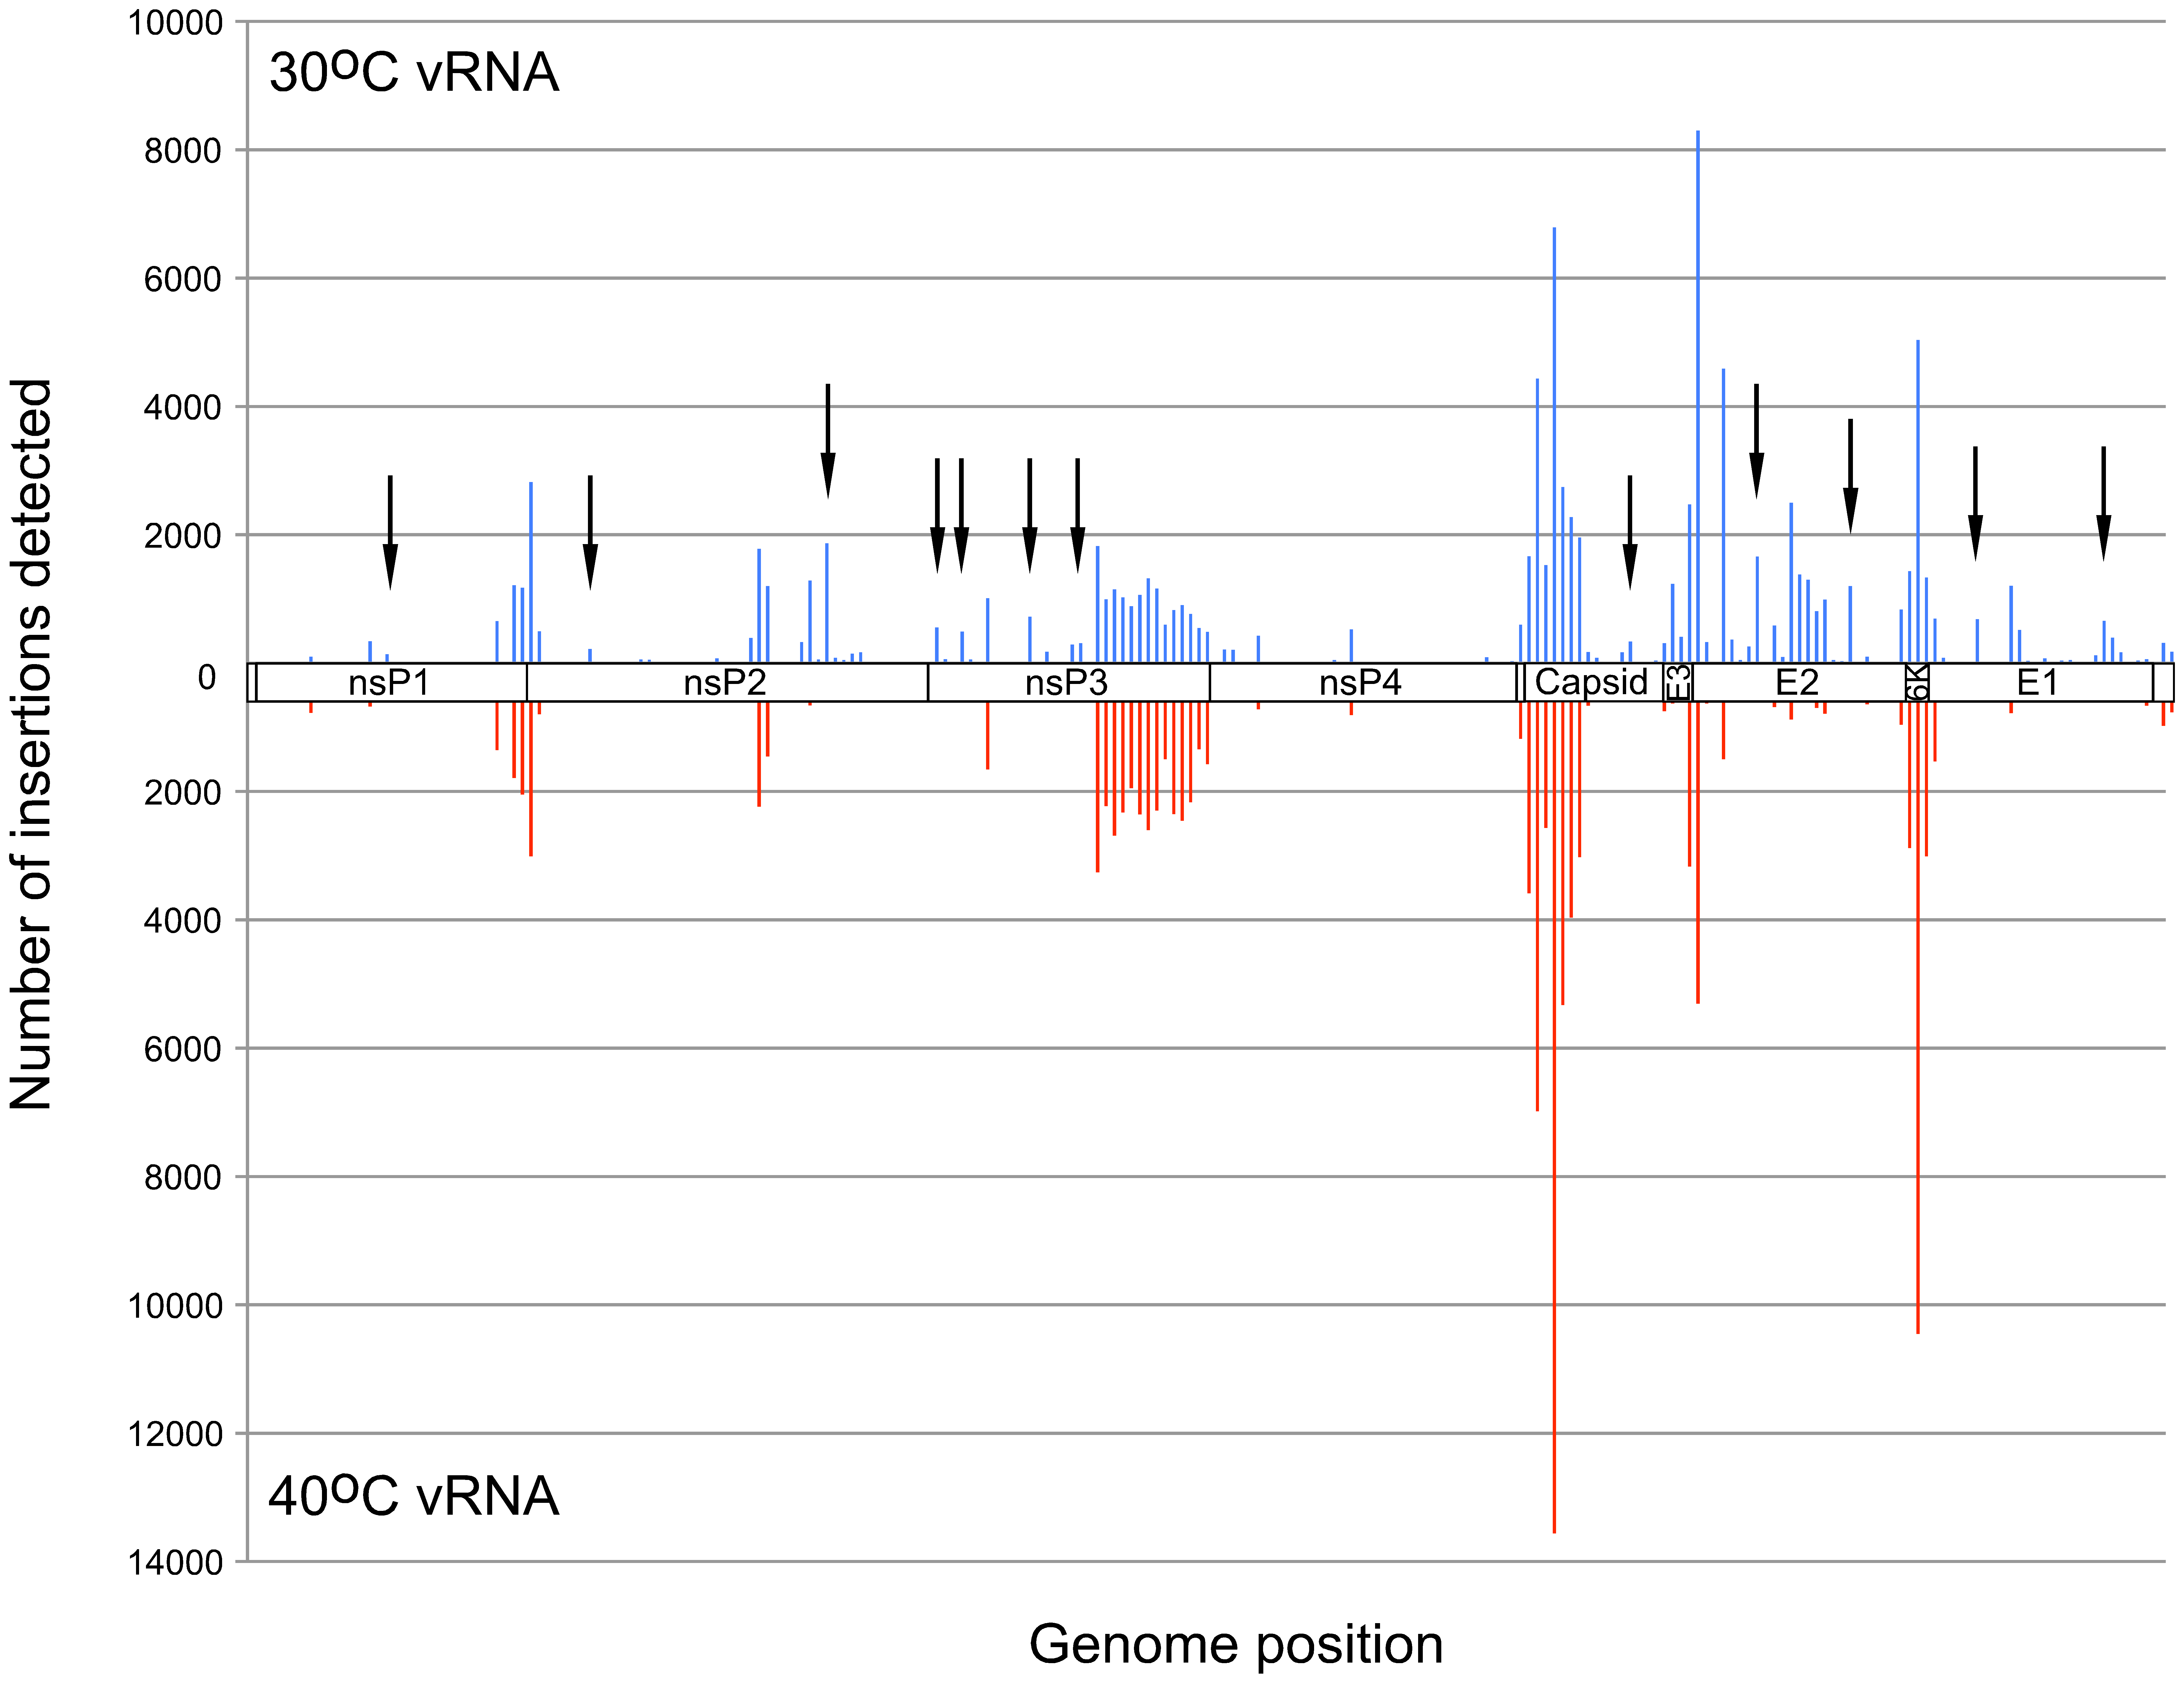 Frequency of insertion sites found in vRNAs of virus propagated at 30°C or 40°C.